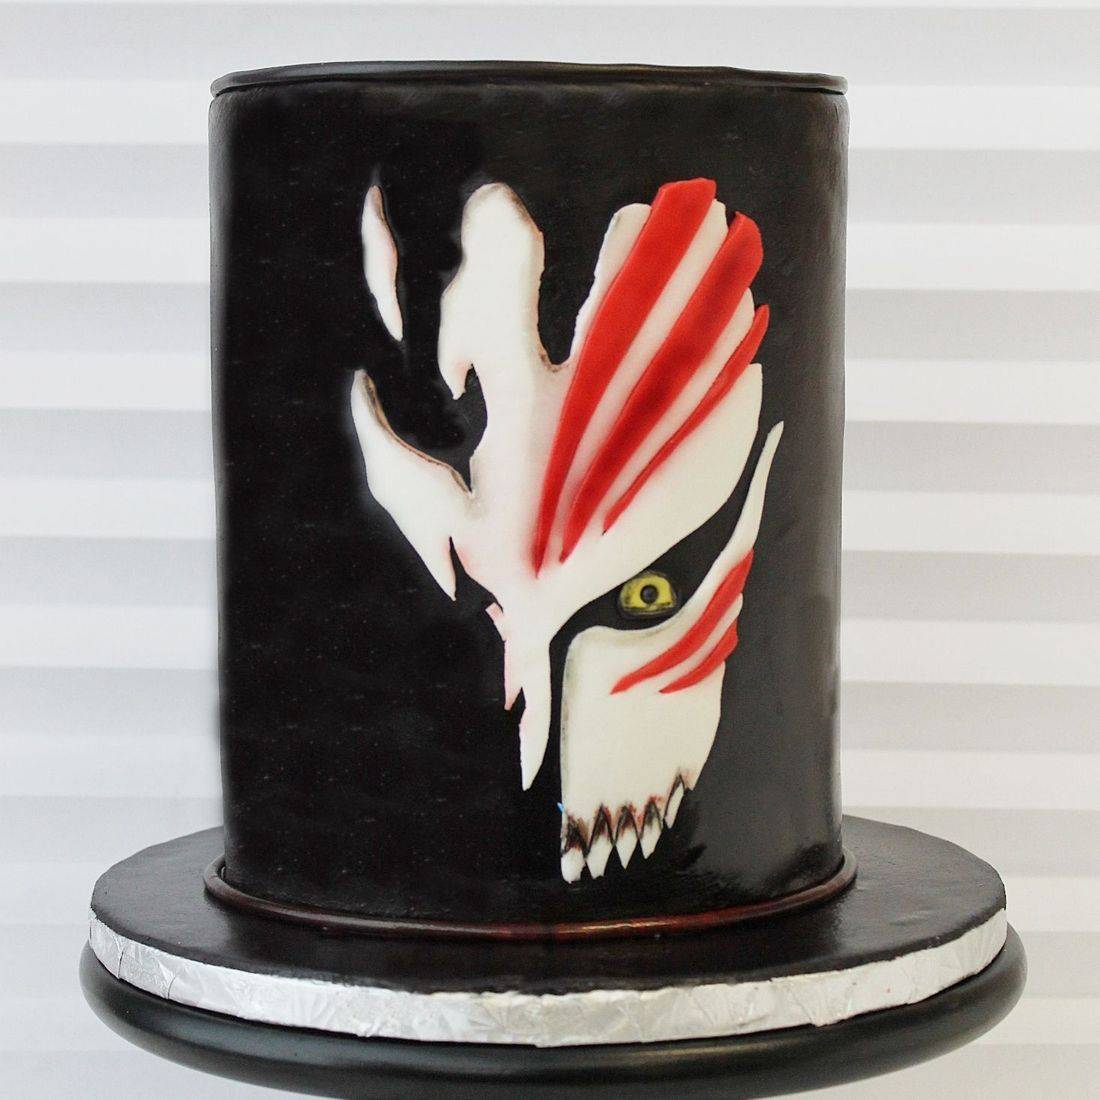 Custom  Bleach Anime Cakes Milwaukee